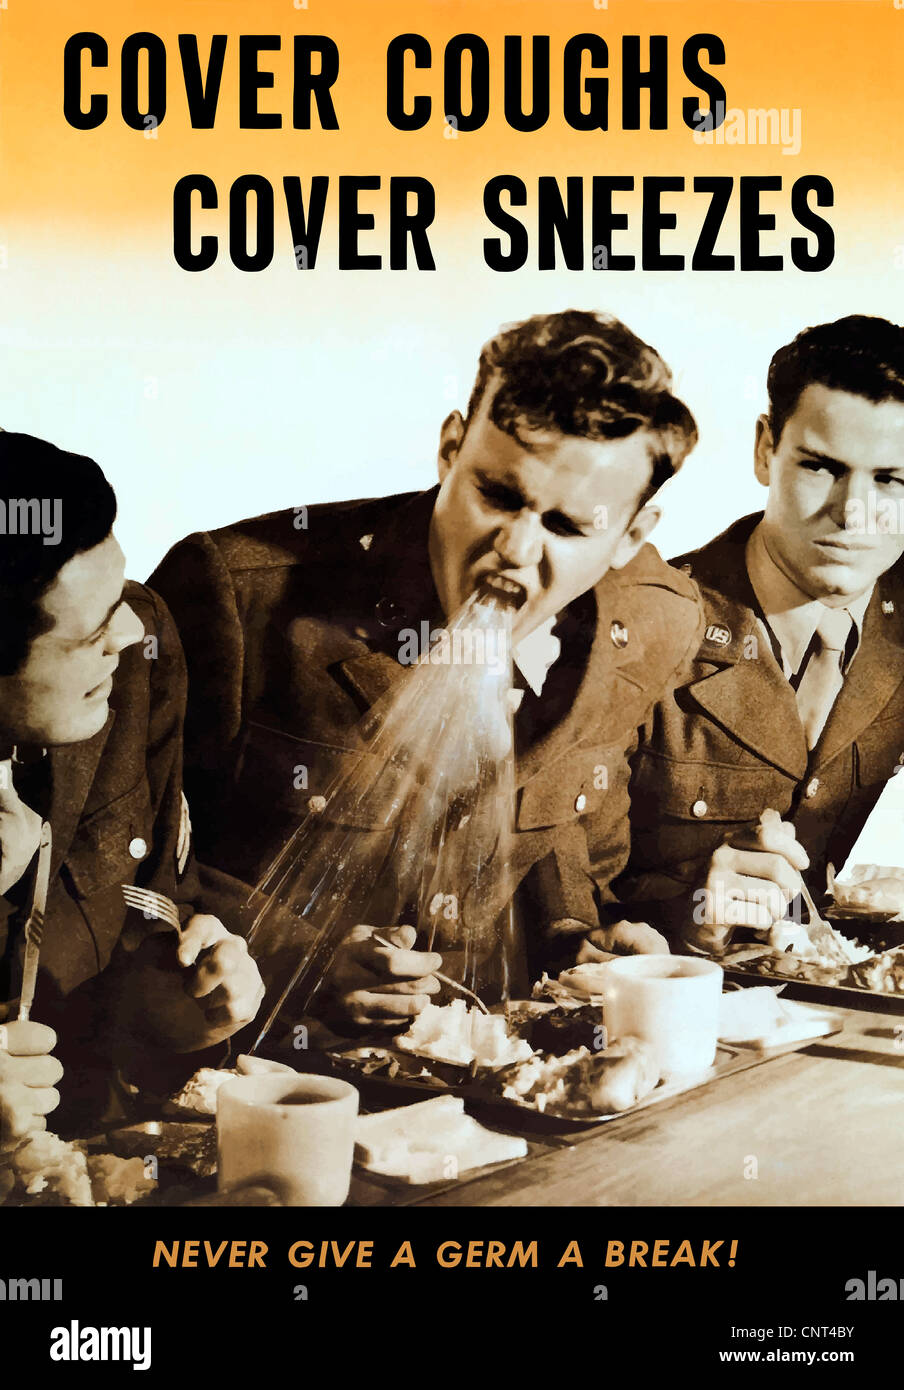 Vintage World War II poster of a soldier coughing on another soldier's food. Stock Photo